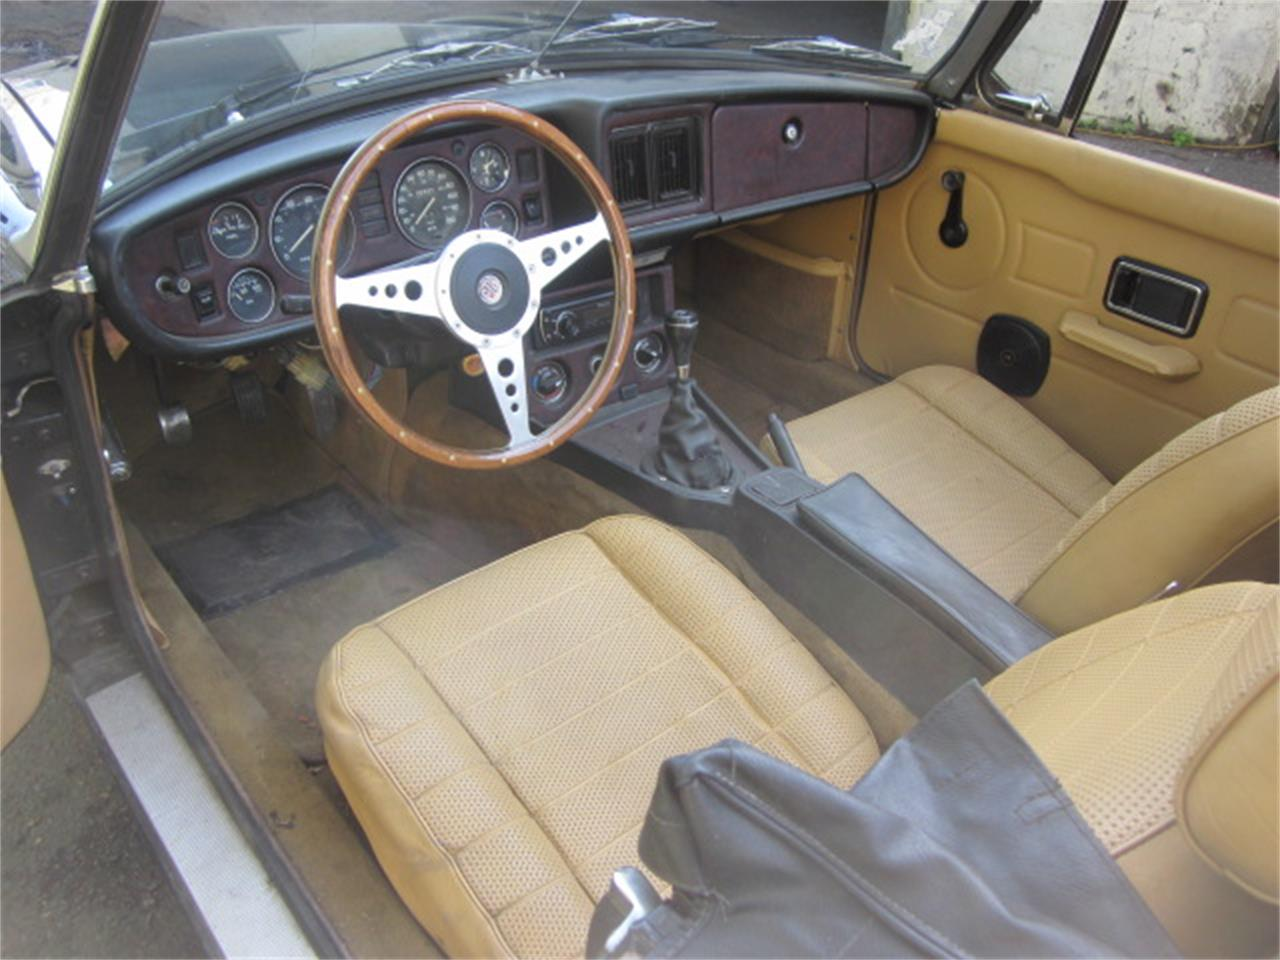 Large Picture of '79 MG MGB located in Stratford Connecticut - $13,900.00 - Q21E